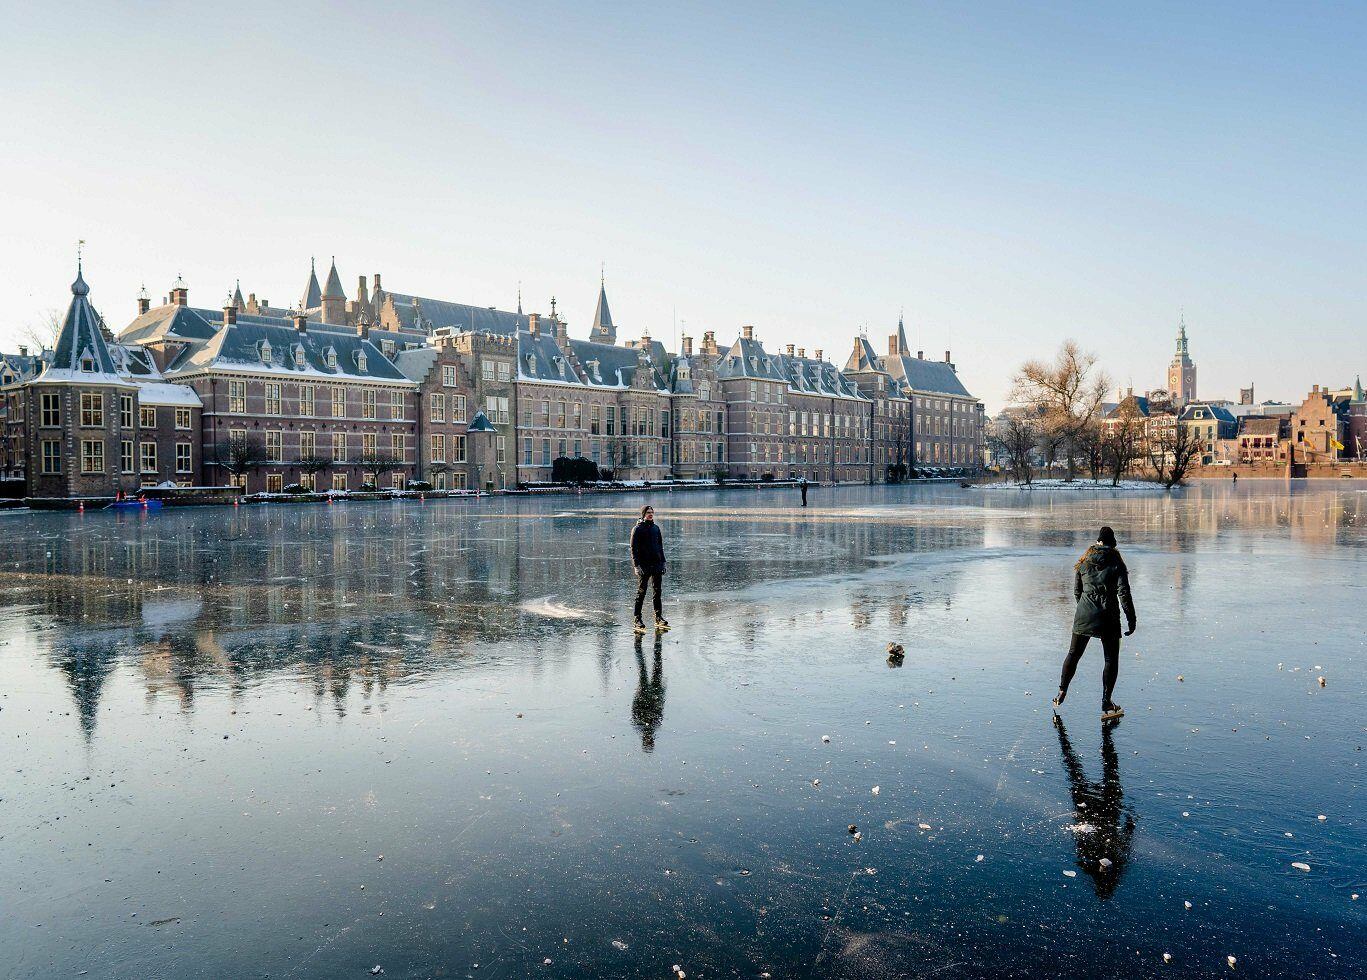 Skaters on the Hofvijver in The Hague, The Netherlands, 12 February 2021